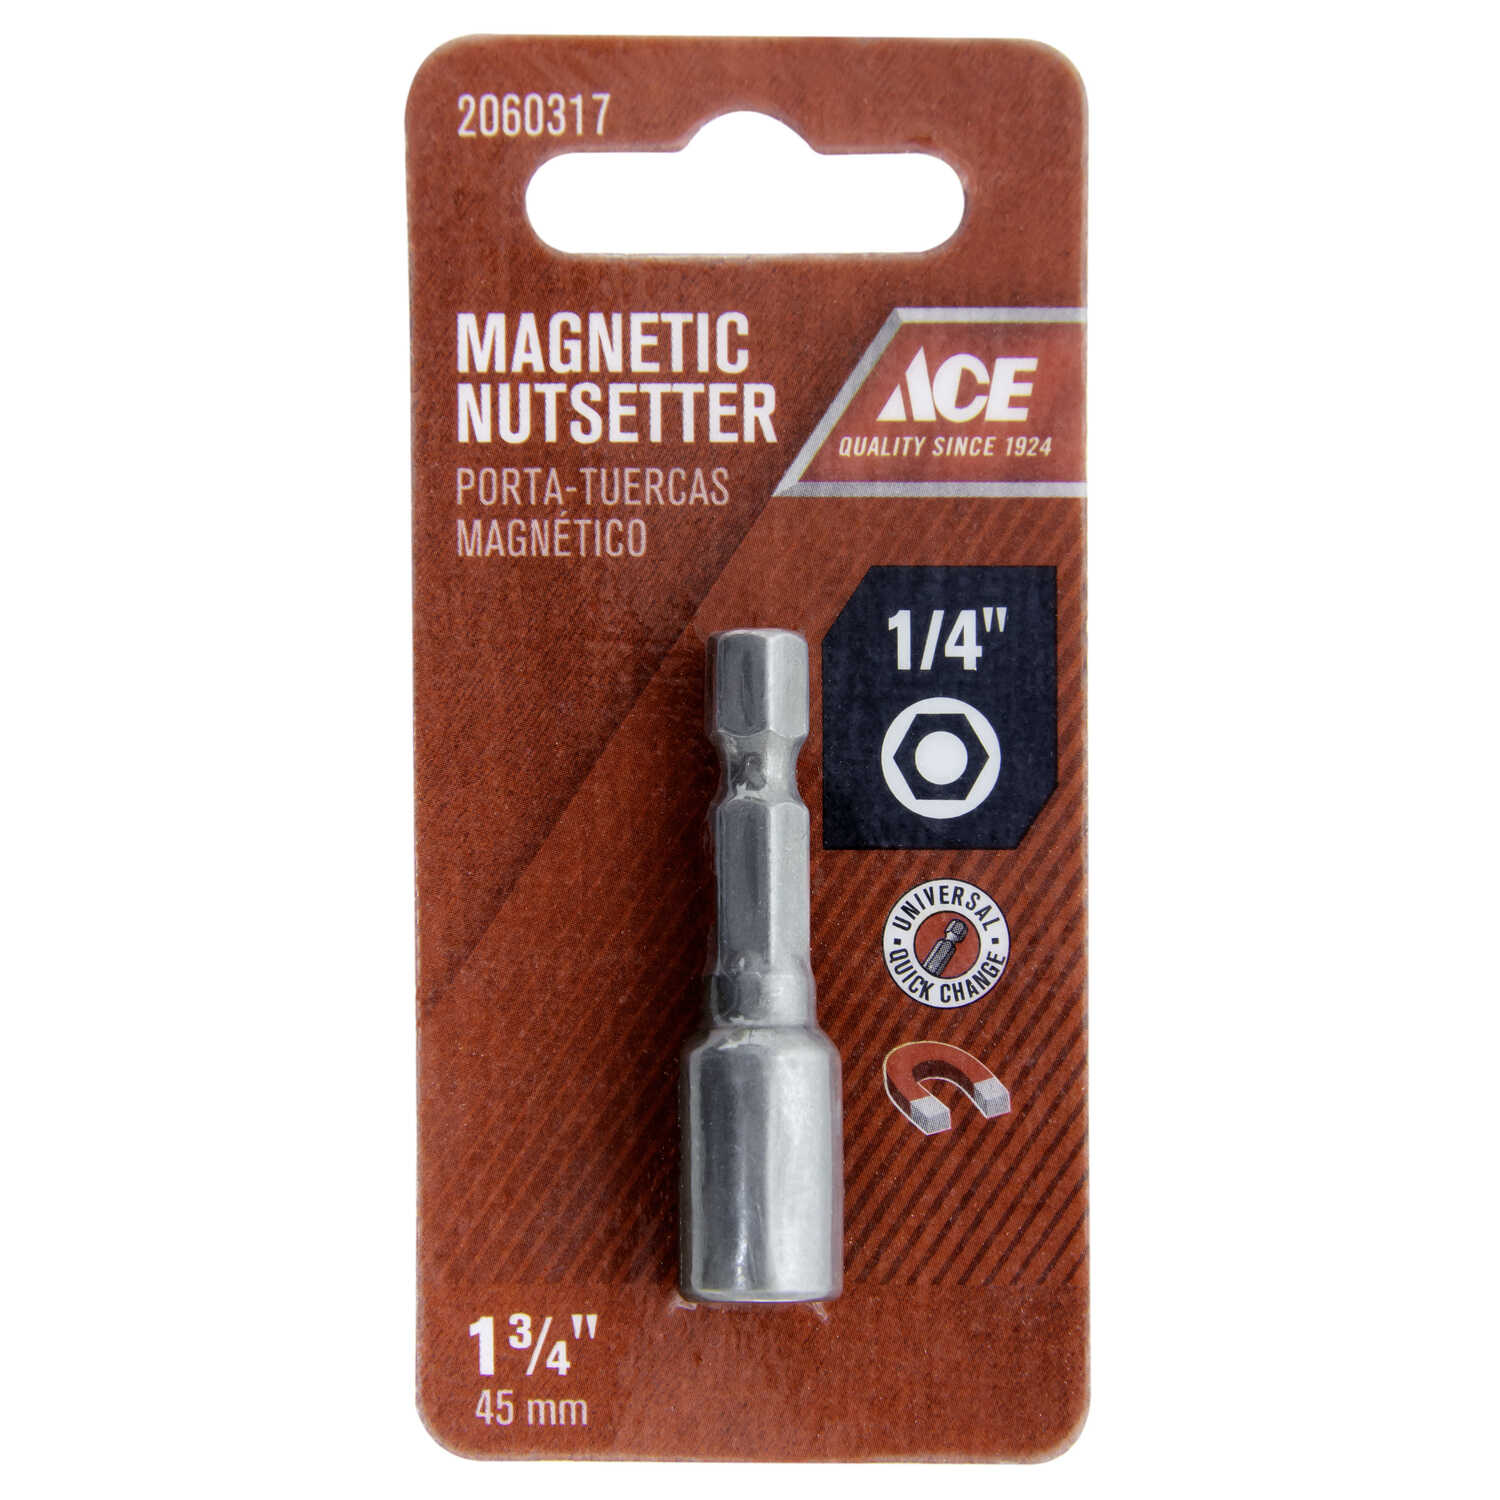 Ace  1/4 in. drive  x 1-3/4 in. L 1/4 in. Quick-Change Hex Shank  Magnetic Nut Setter  Chrome Vanadi